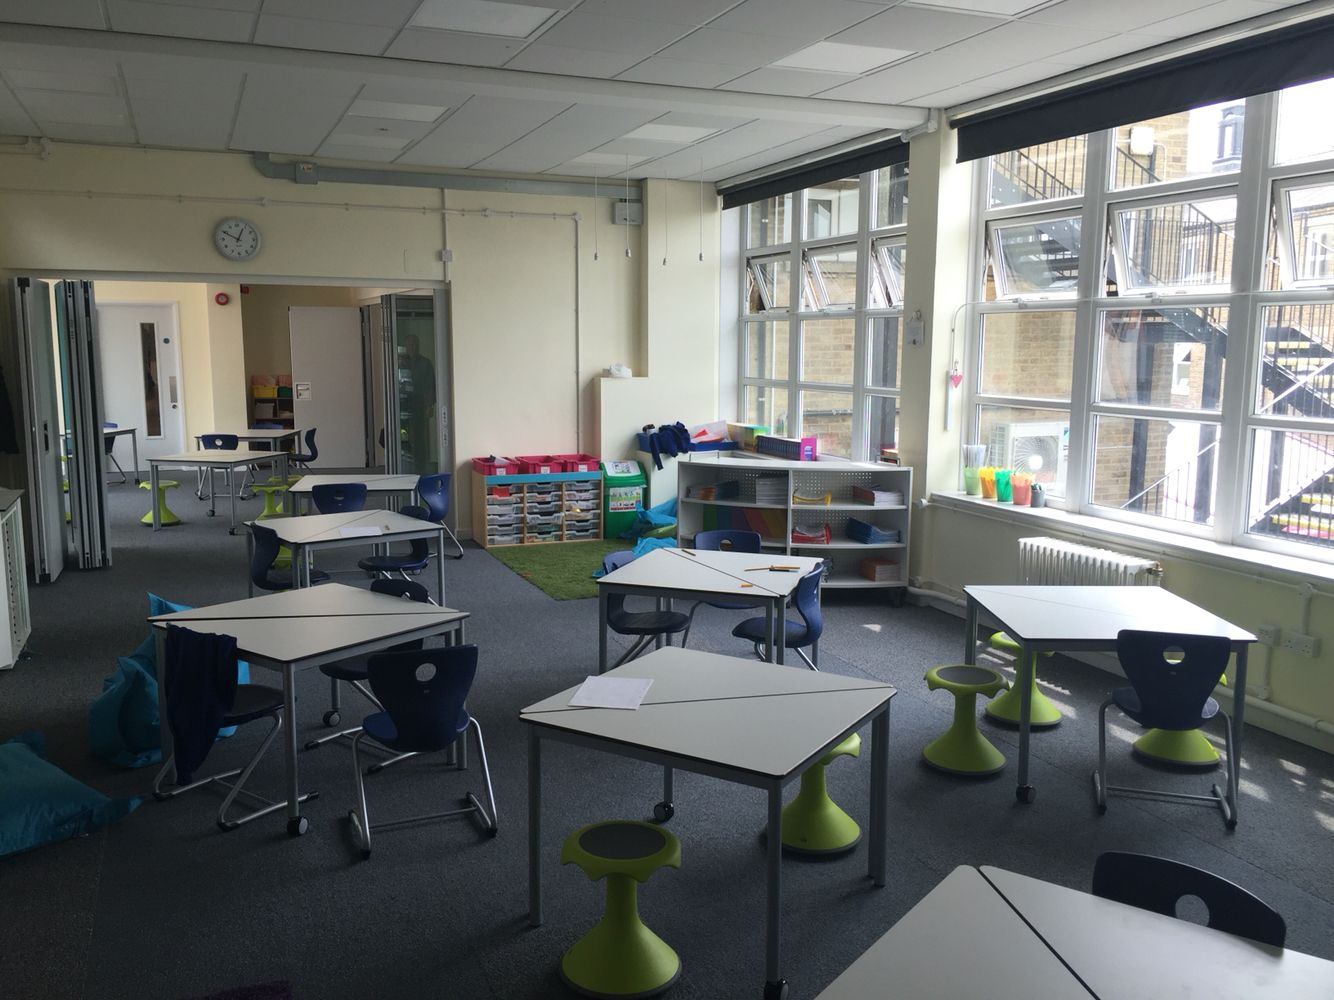 South Kendingtons Prep School With VS Shift Furniture